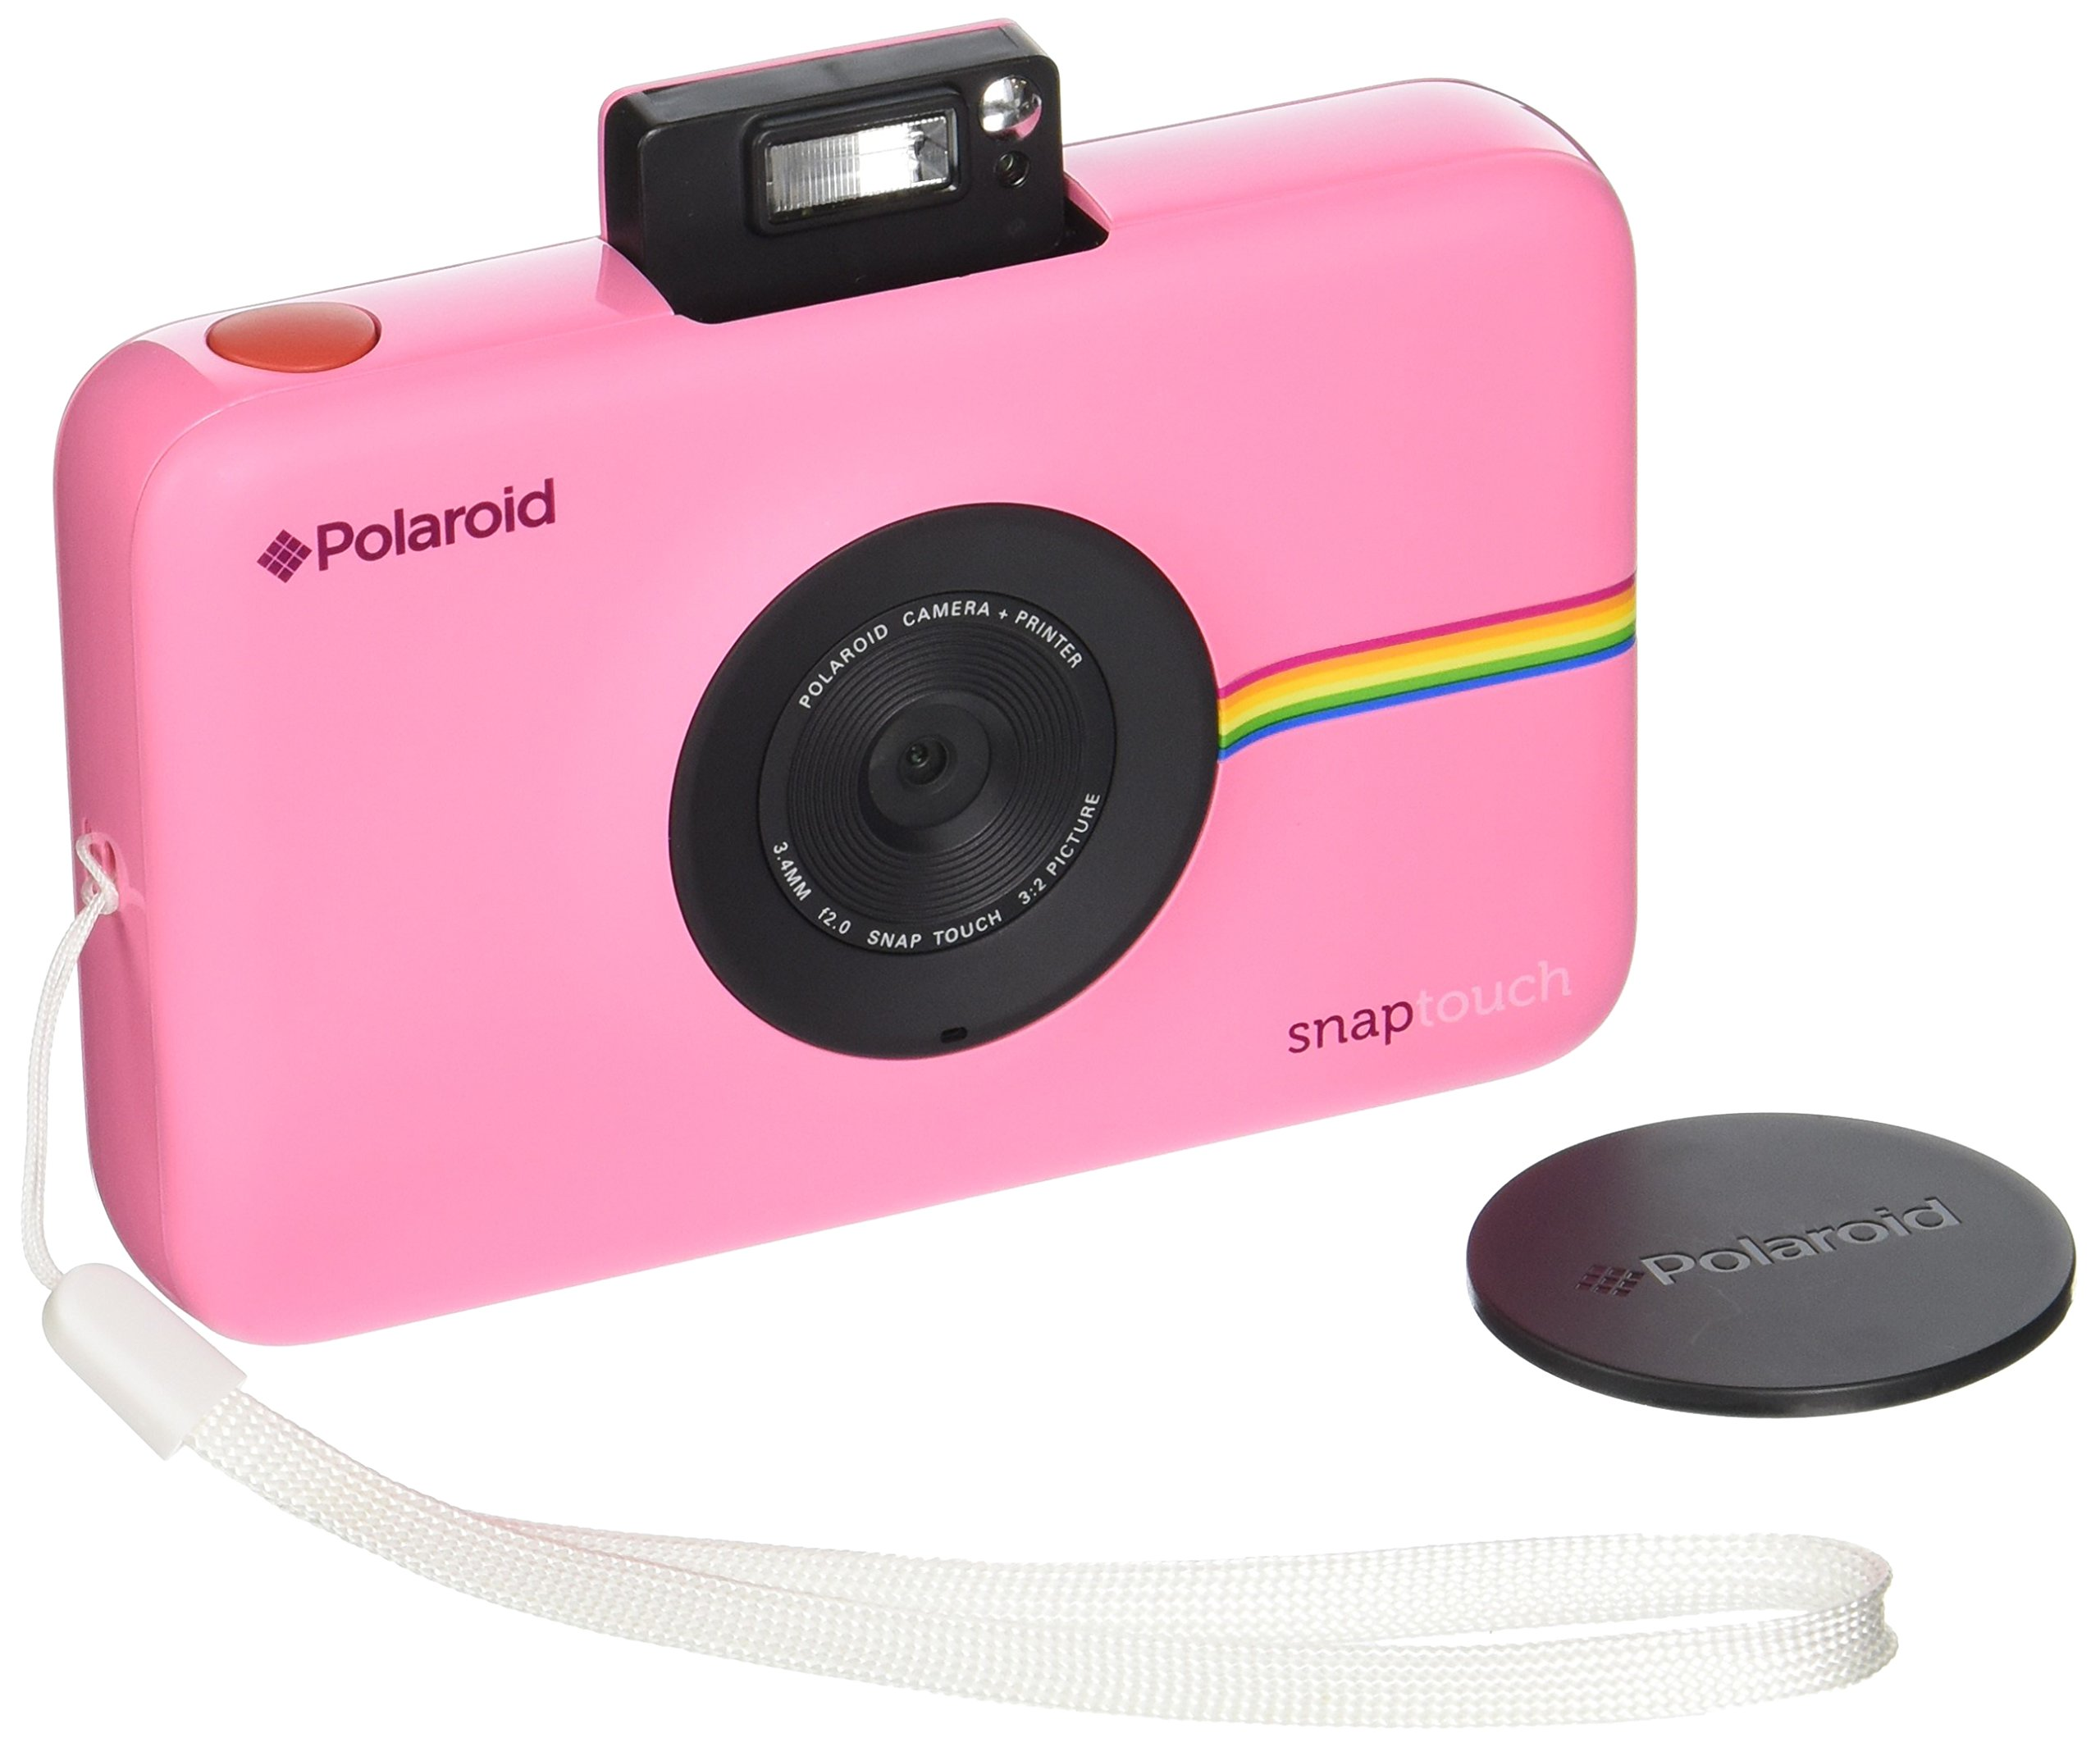 0403d7cfc2 Get Quotations · Polaroid Snap Touch Portable Instant Print Digital Camera  with LCD Touchscreen Display (Pink)